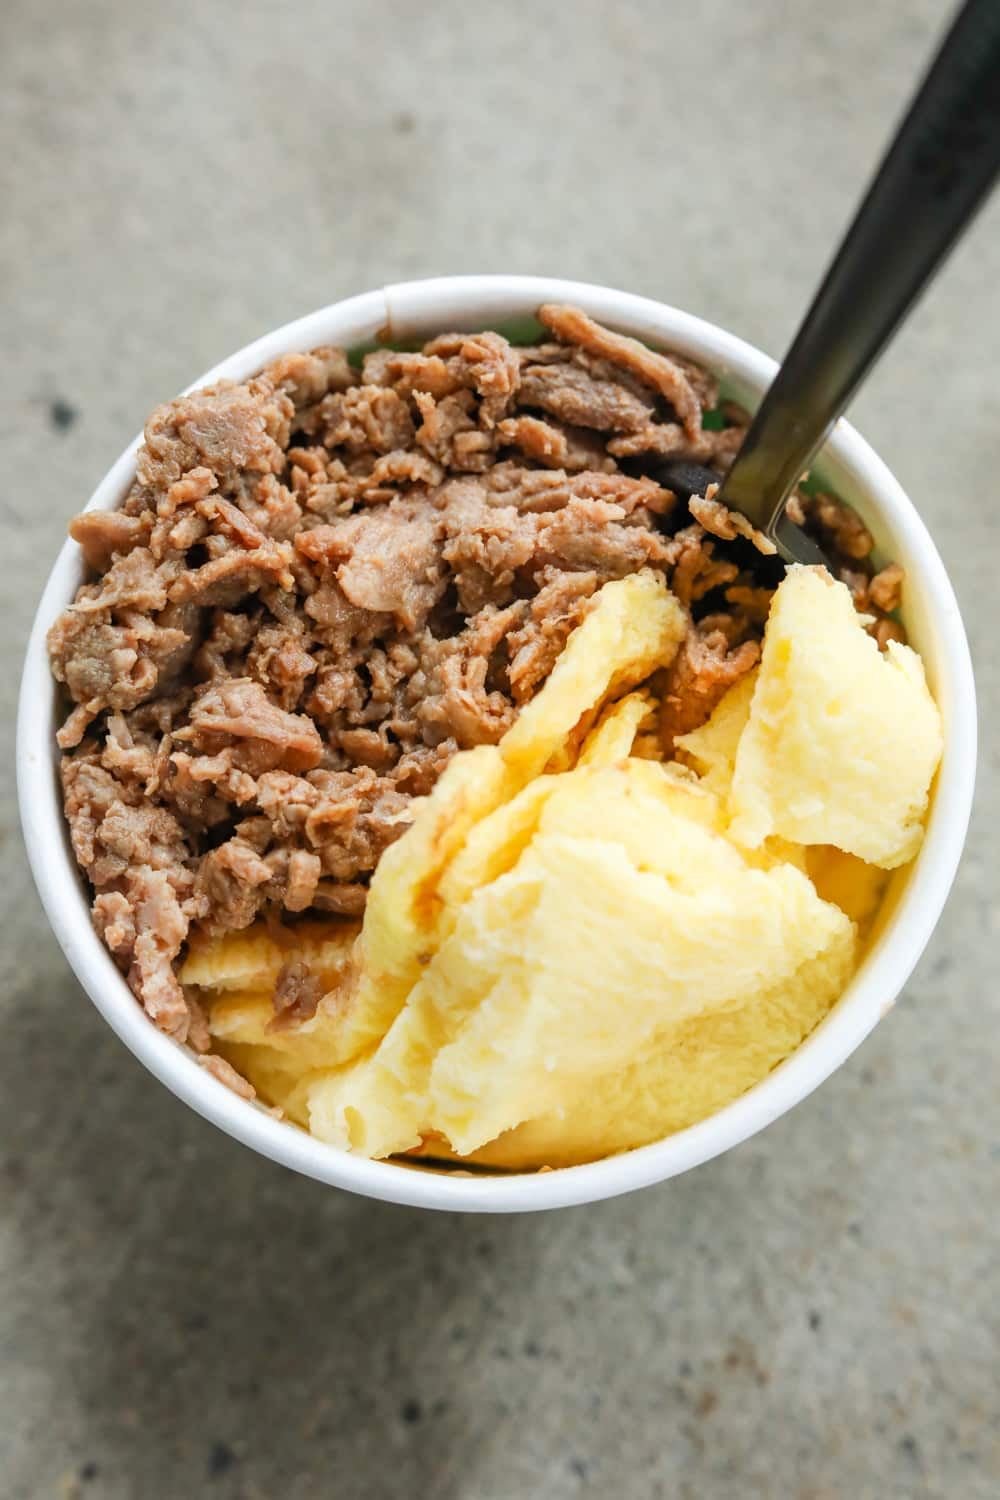 A white cup filled with shredded steak, scrambled eggs, and cheese.